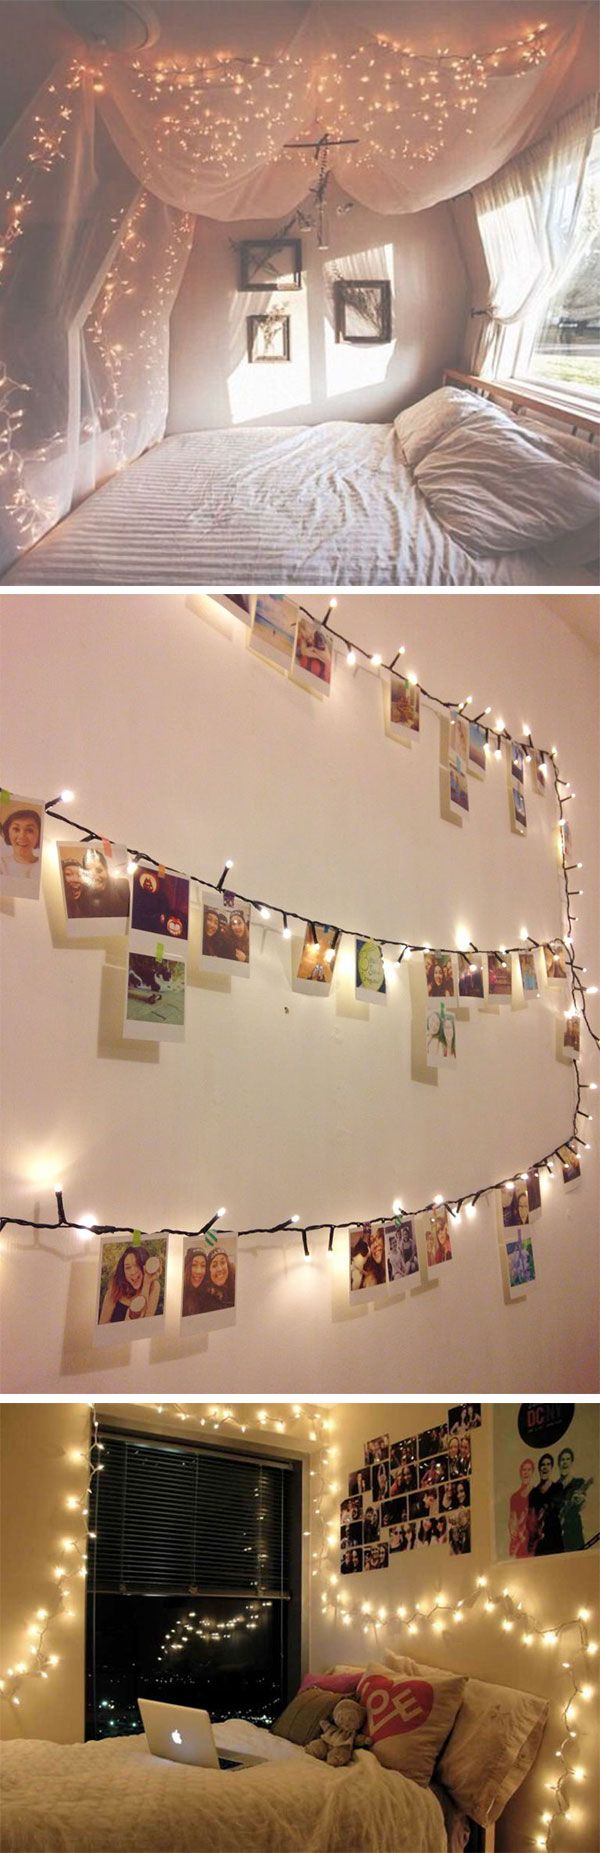 Diy bedroom decor ideas - 13 Ways To Use Fairy Lights To Make Your Home Look Magical Room Decor Diy